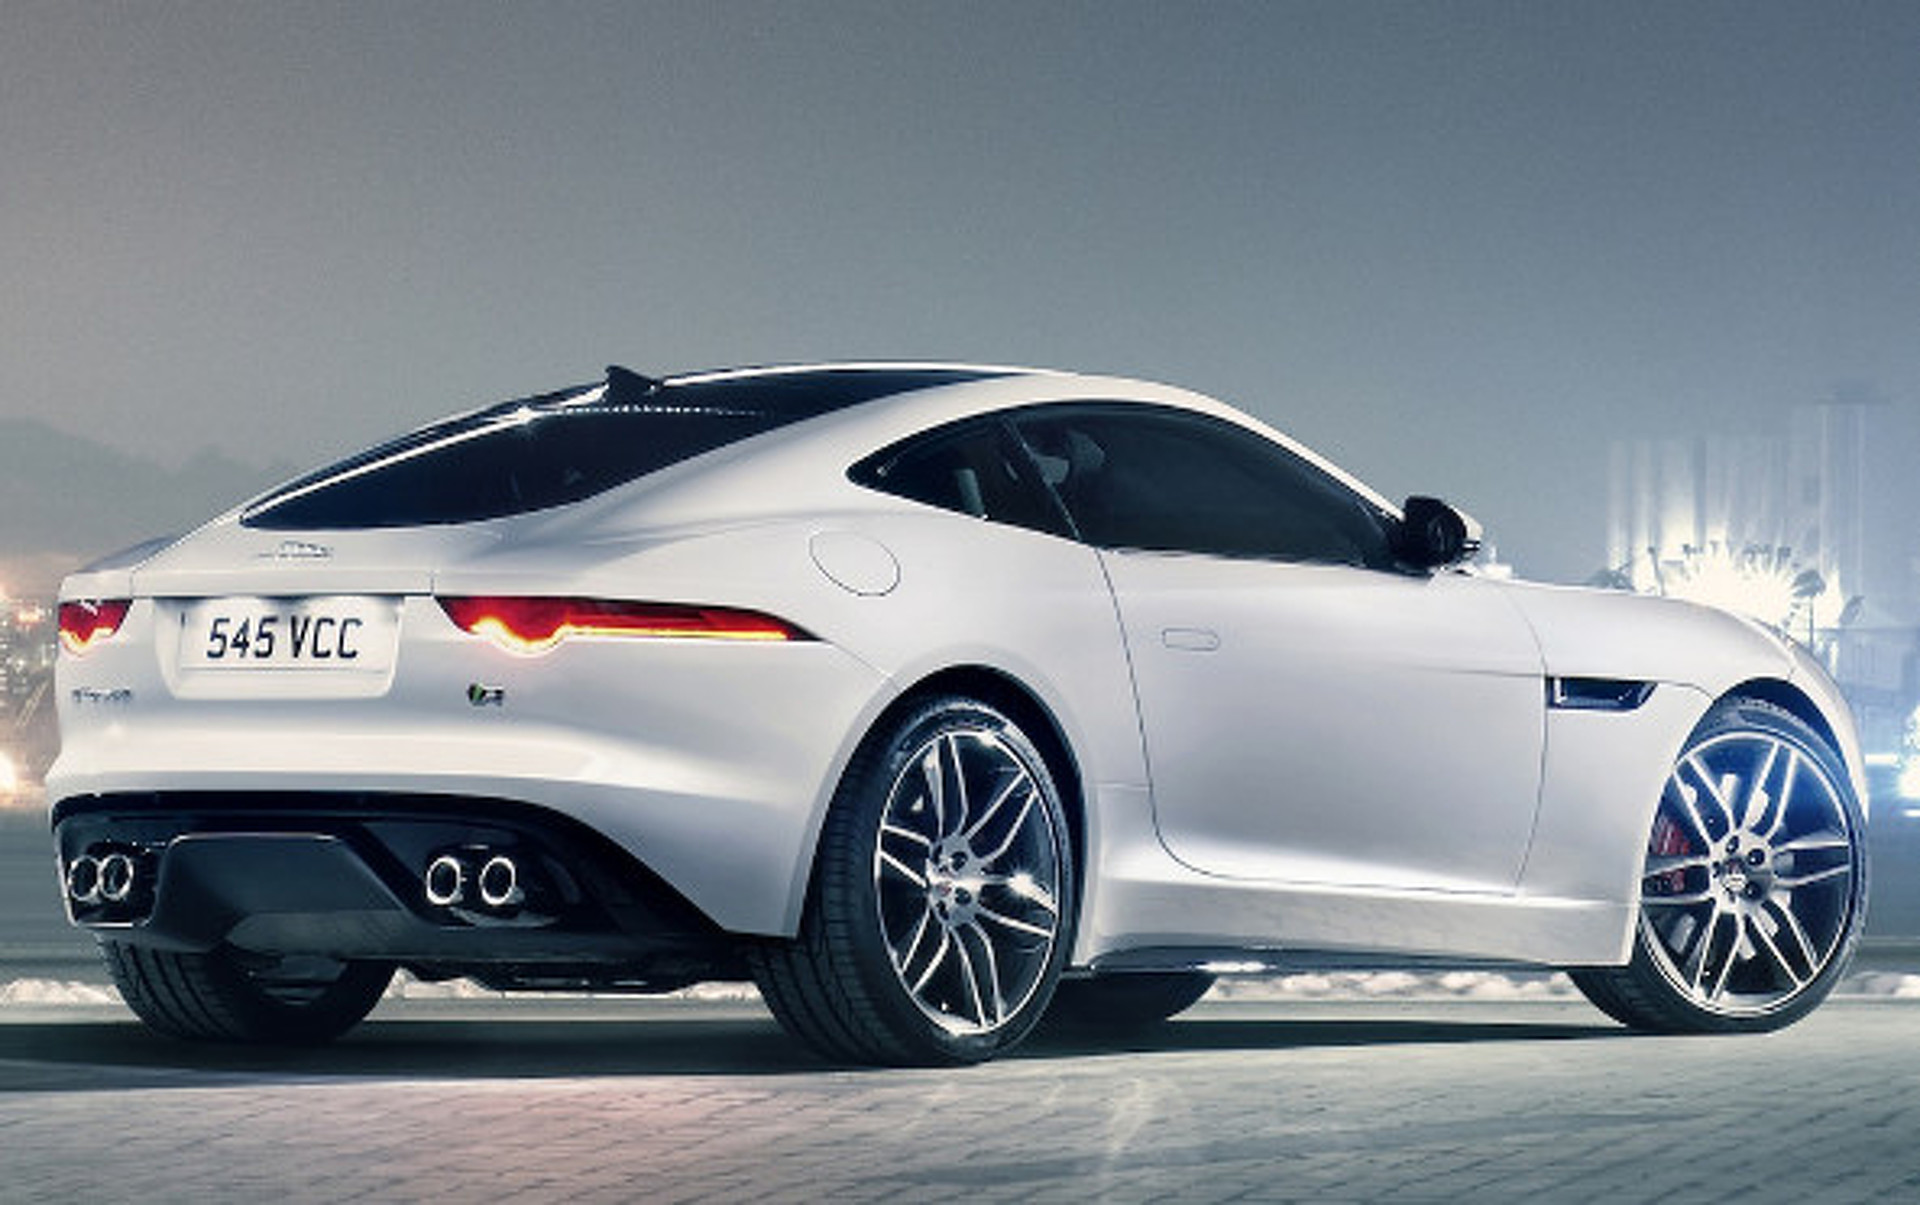 The Jaguar F Type is Stunning But Do All New Sports Cars